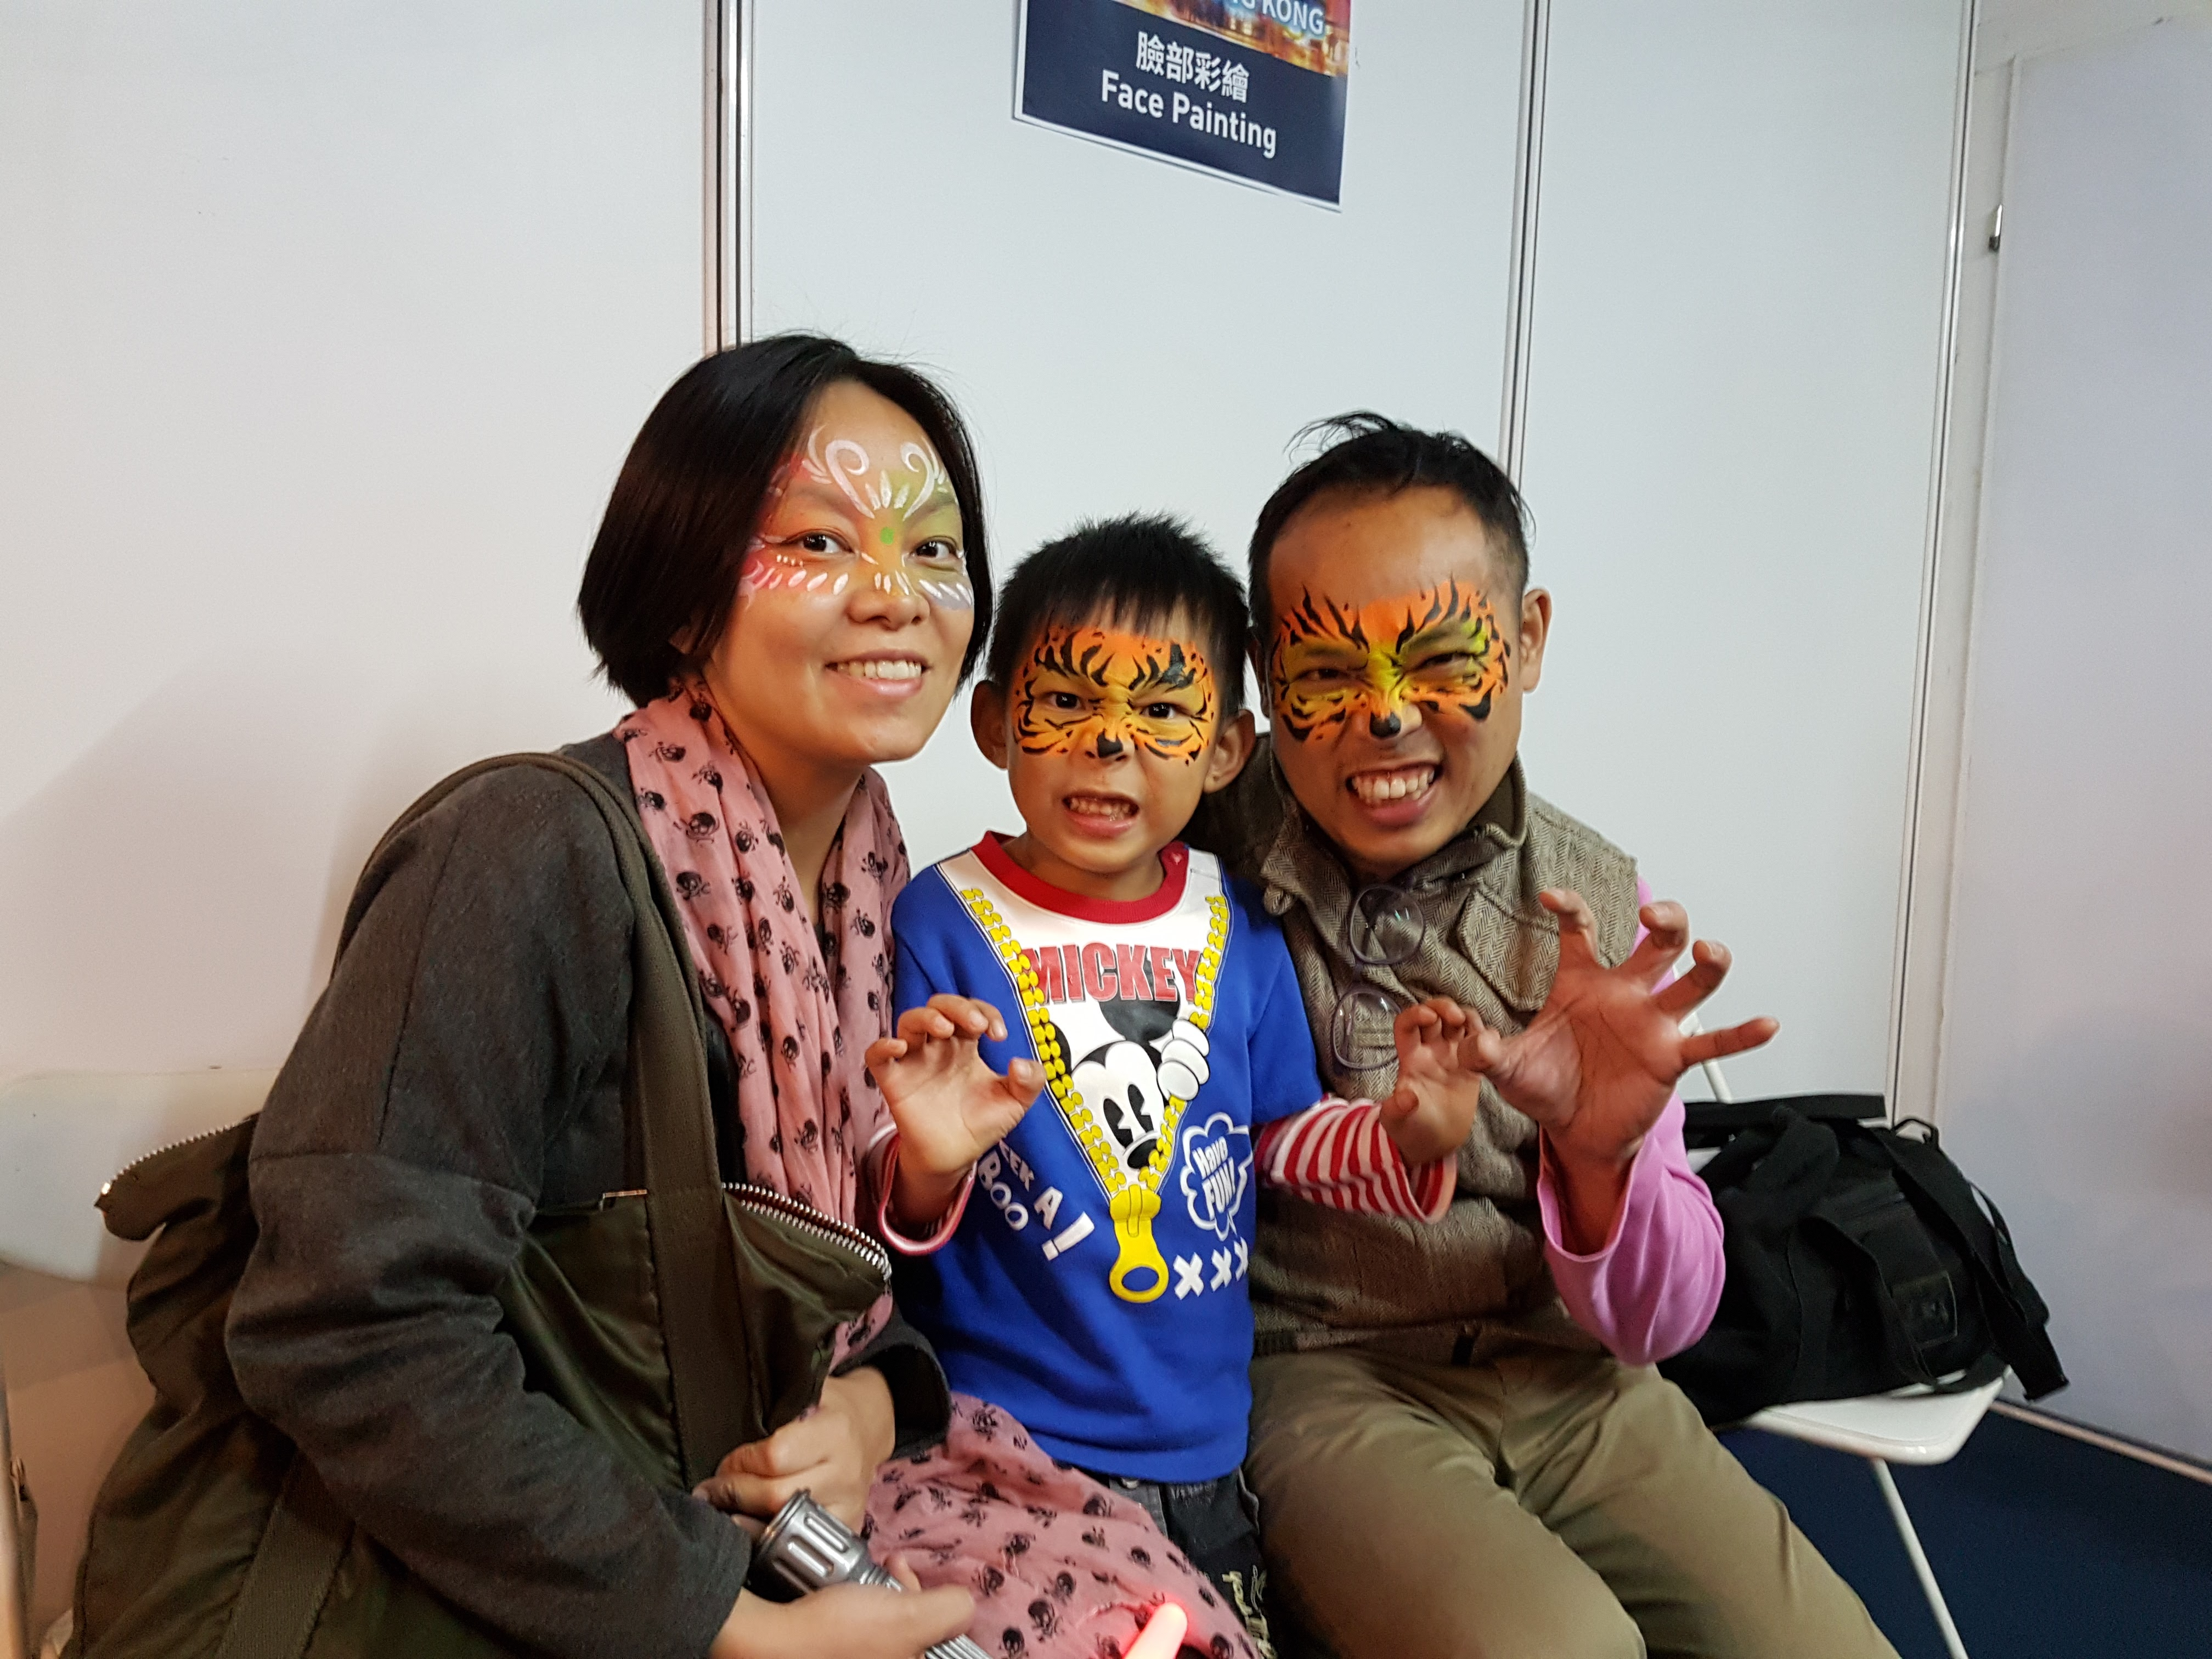 A family positing at the free face painting booth at Lumieres Hong kong